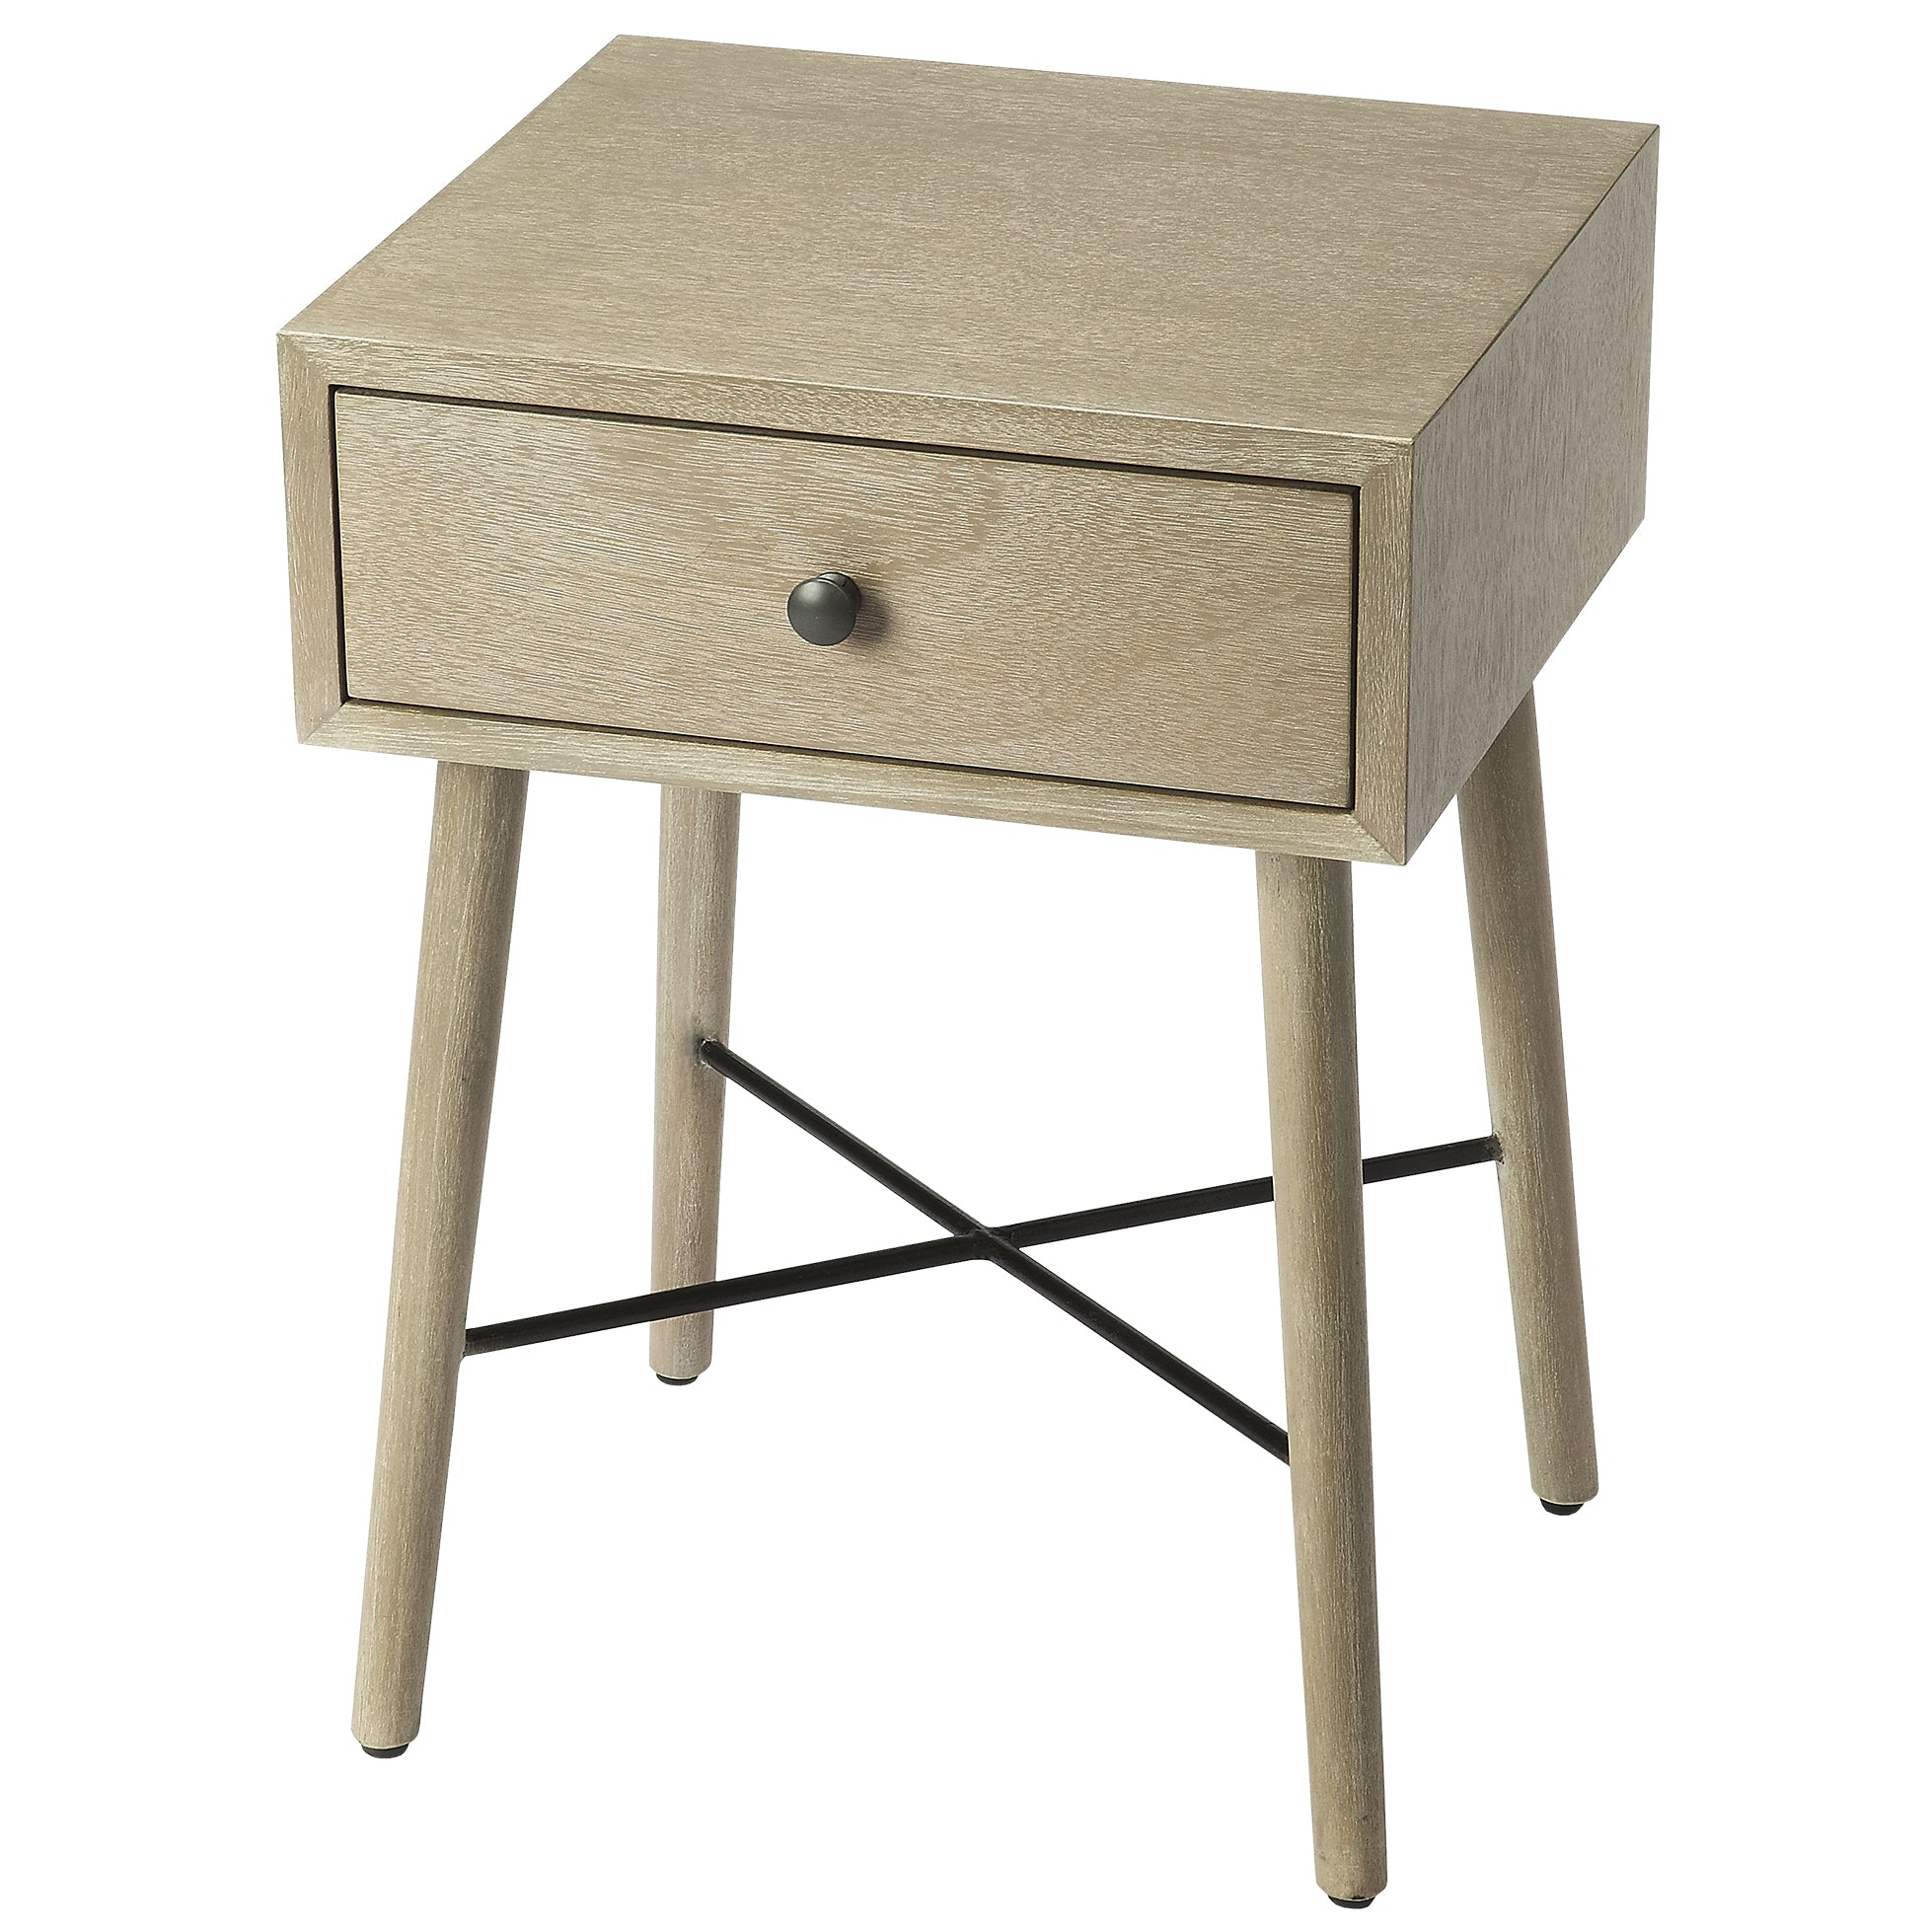 Gray Mid Century Modern Nightstand End Table